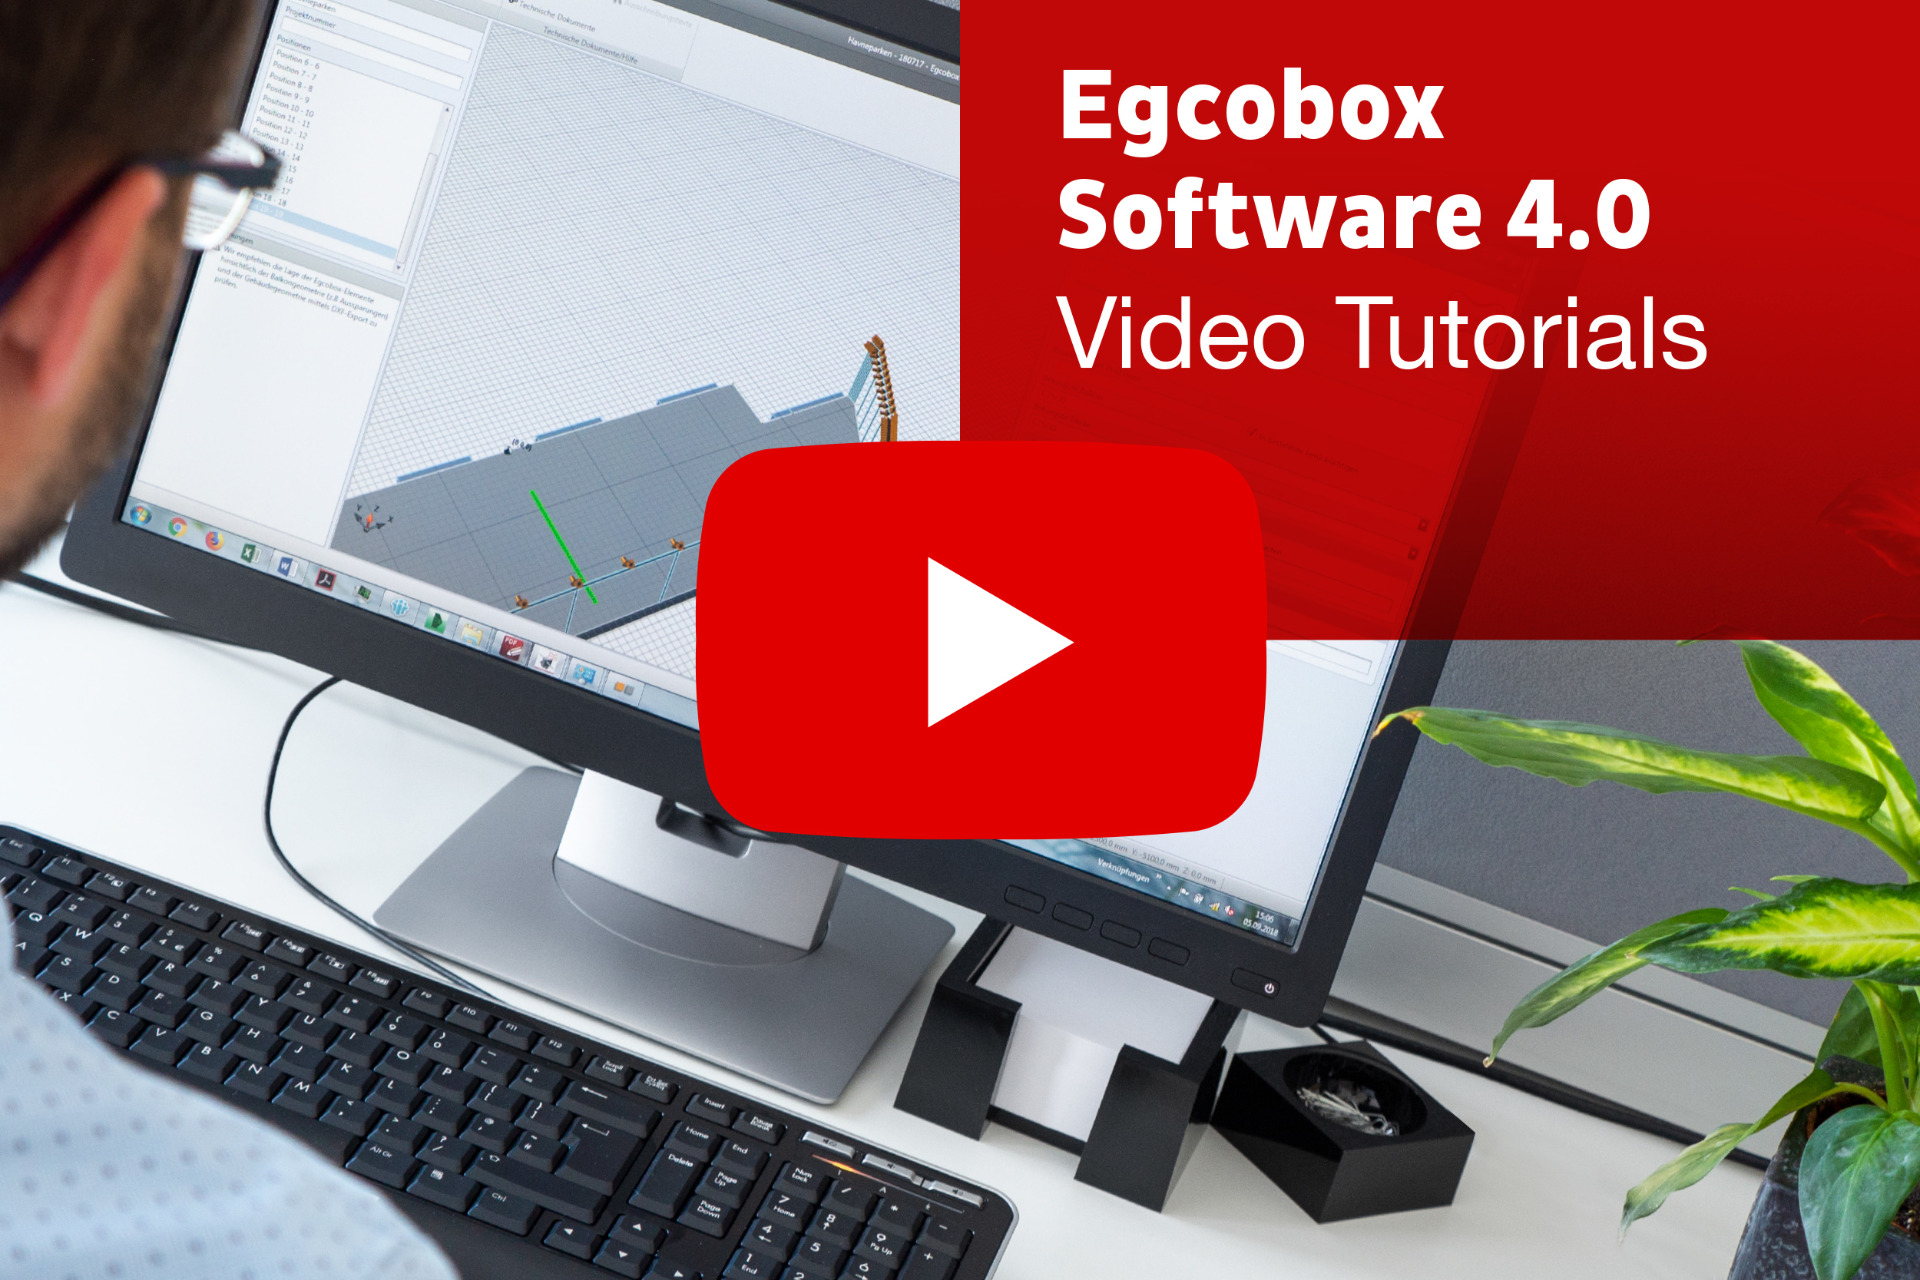 Egcobox Software Video Tutorials - YouTube Playlist